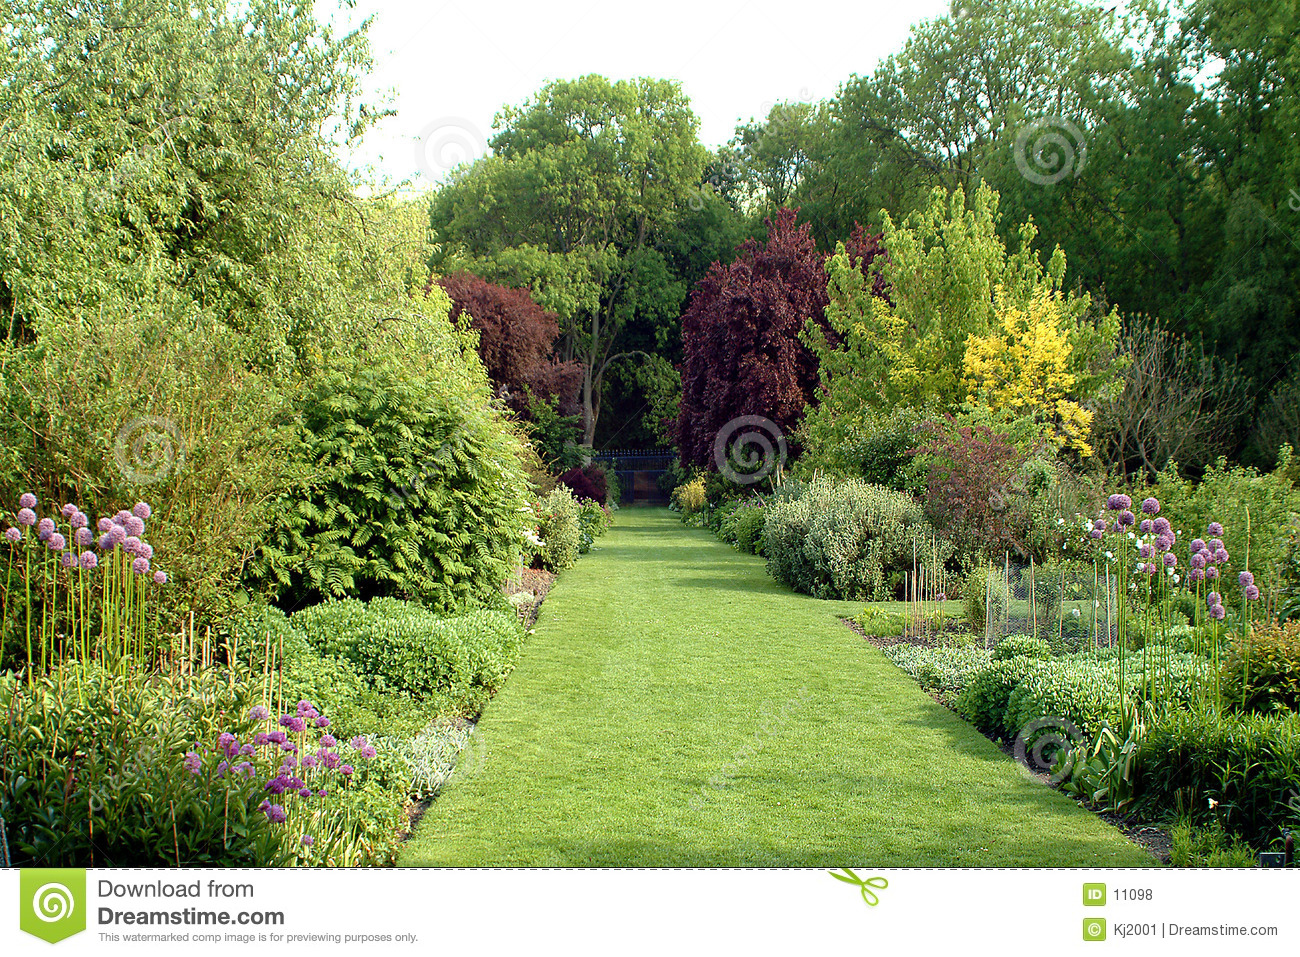 Jardin anglais de pays photos libres de droits image 11098 for Photo de jardin anglais